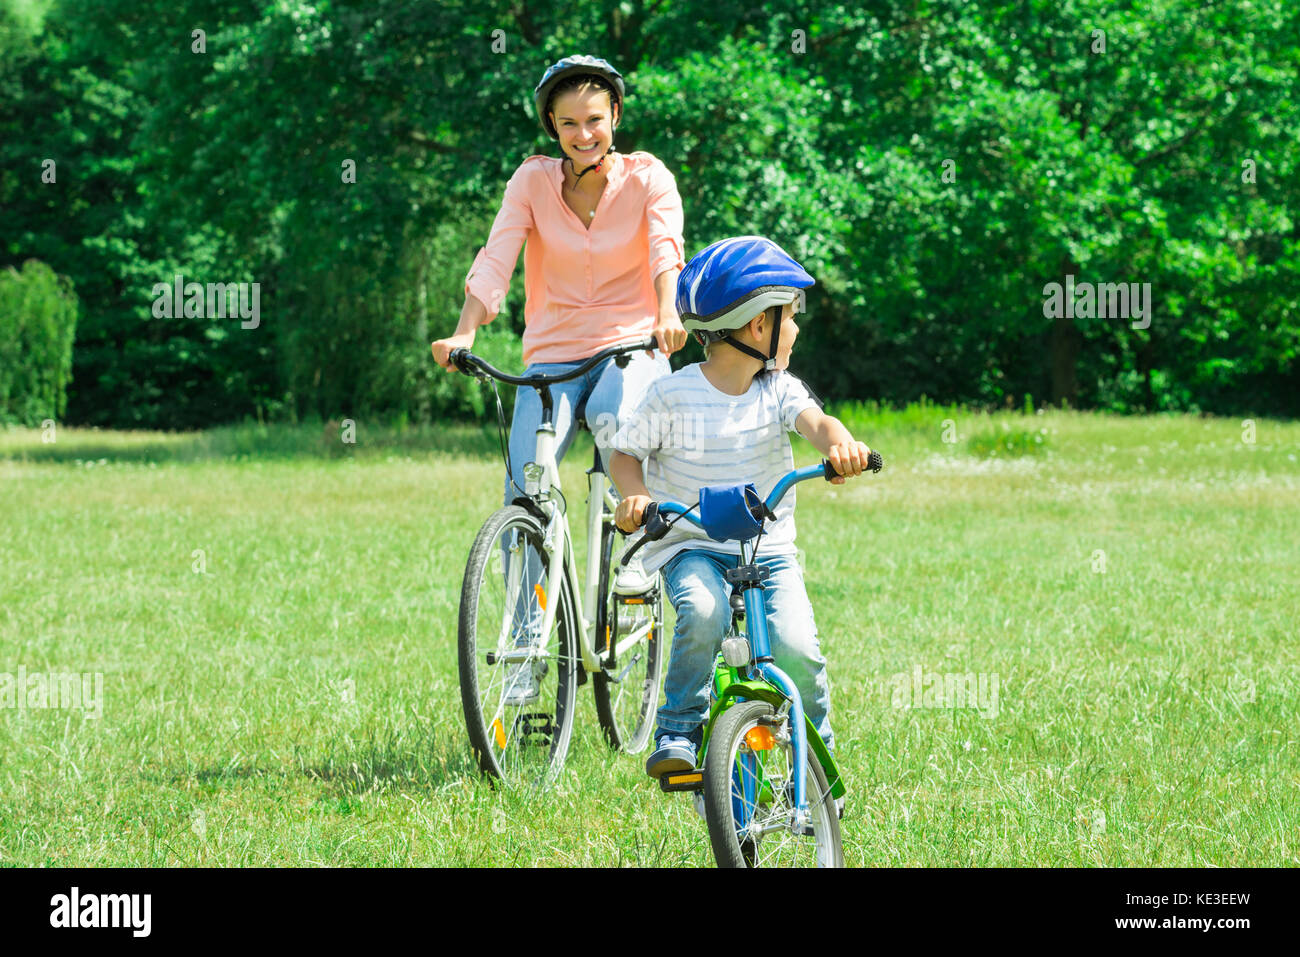 Mother And Son Enjoying The Ride On Bicycle In The Park Stock Photo